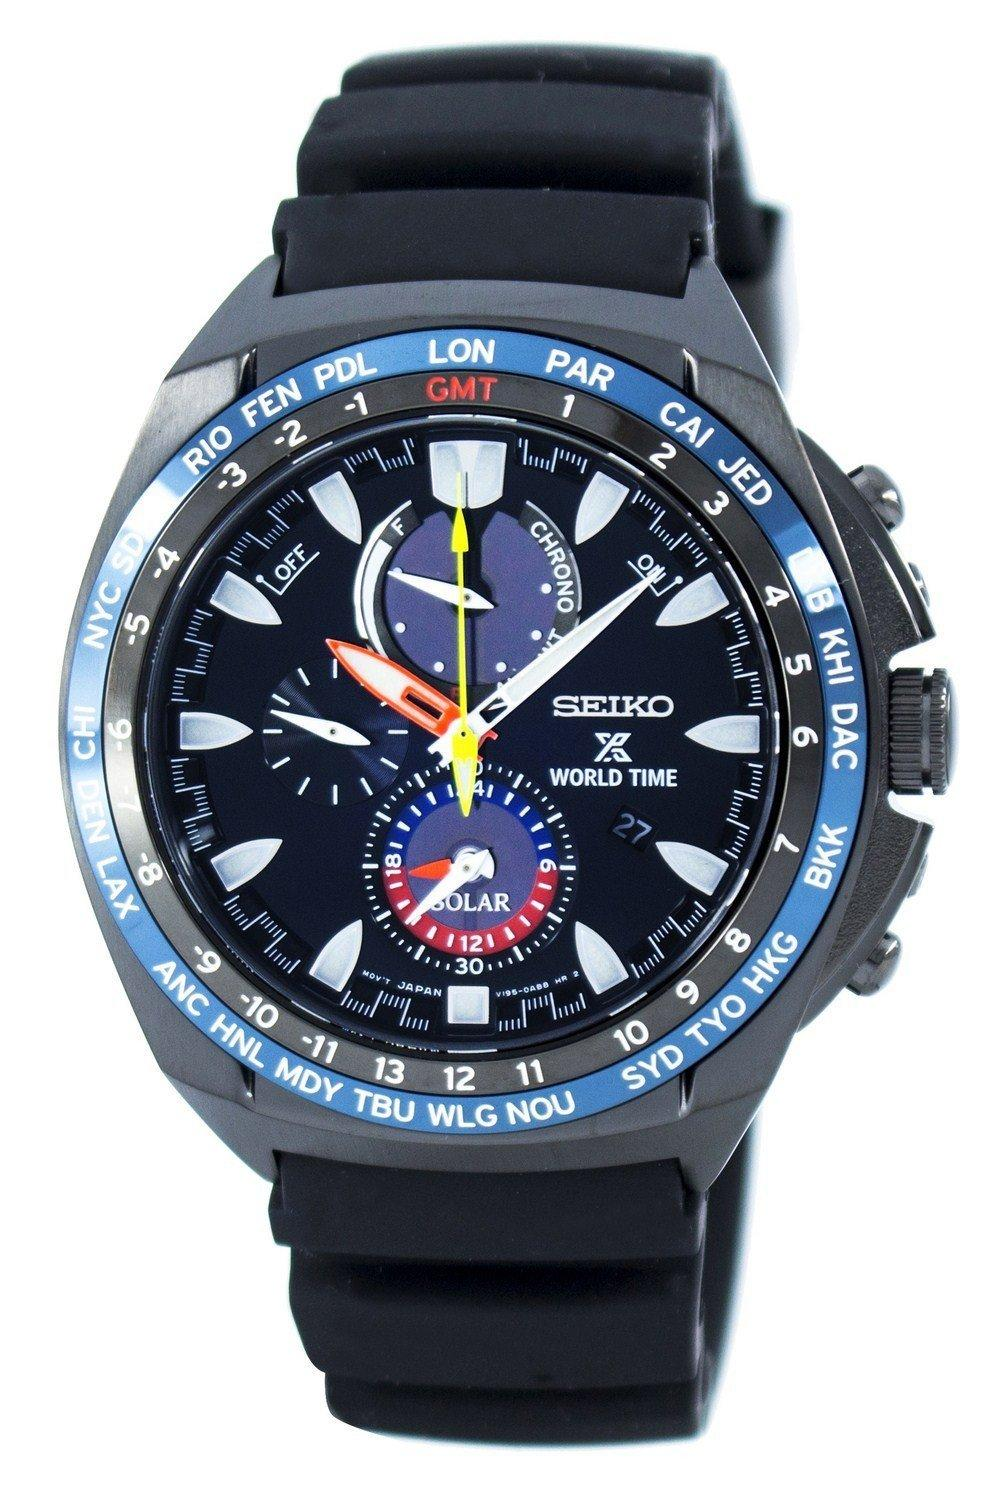 Seiko Prospex World Time Solar Chronograph Ssc551 Ssc551p1 Ssc551p Men's Watch